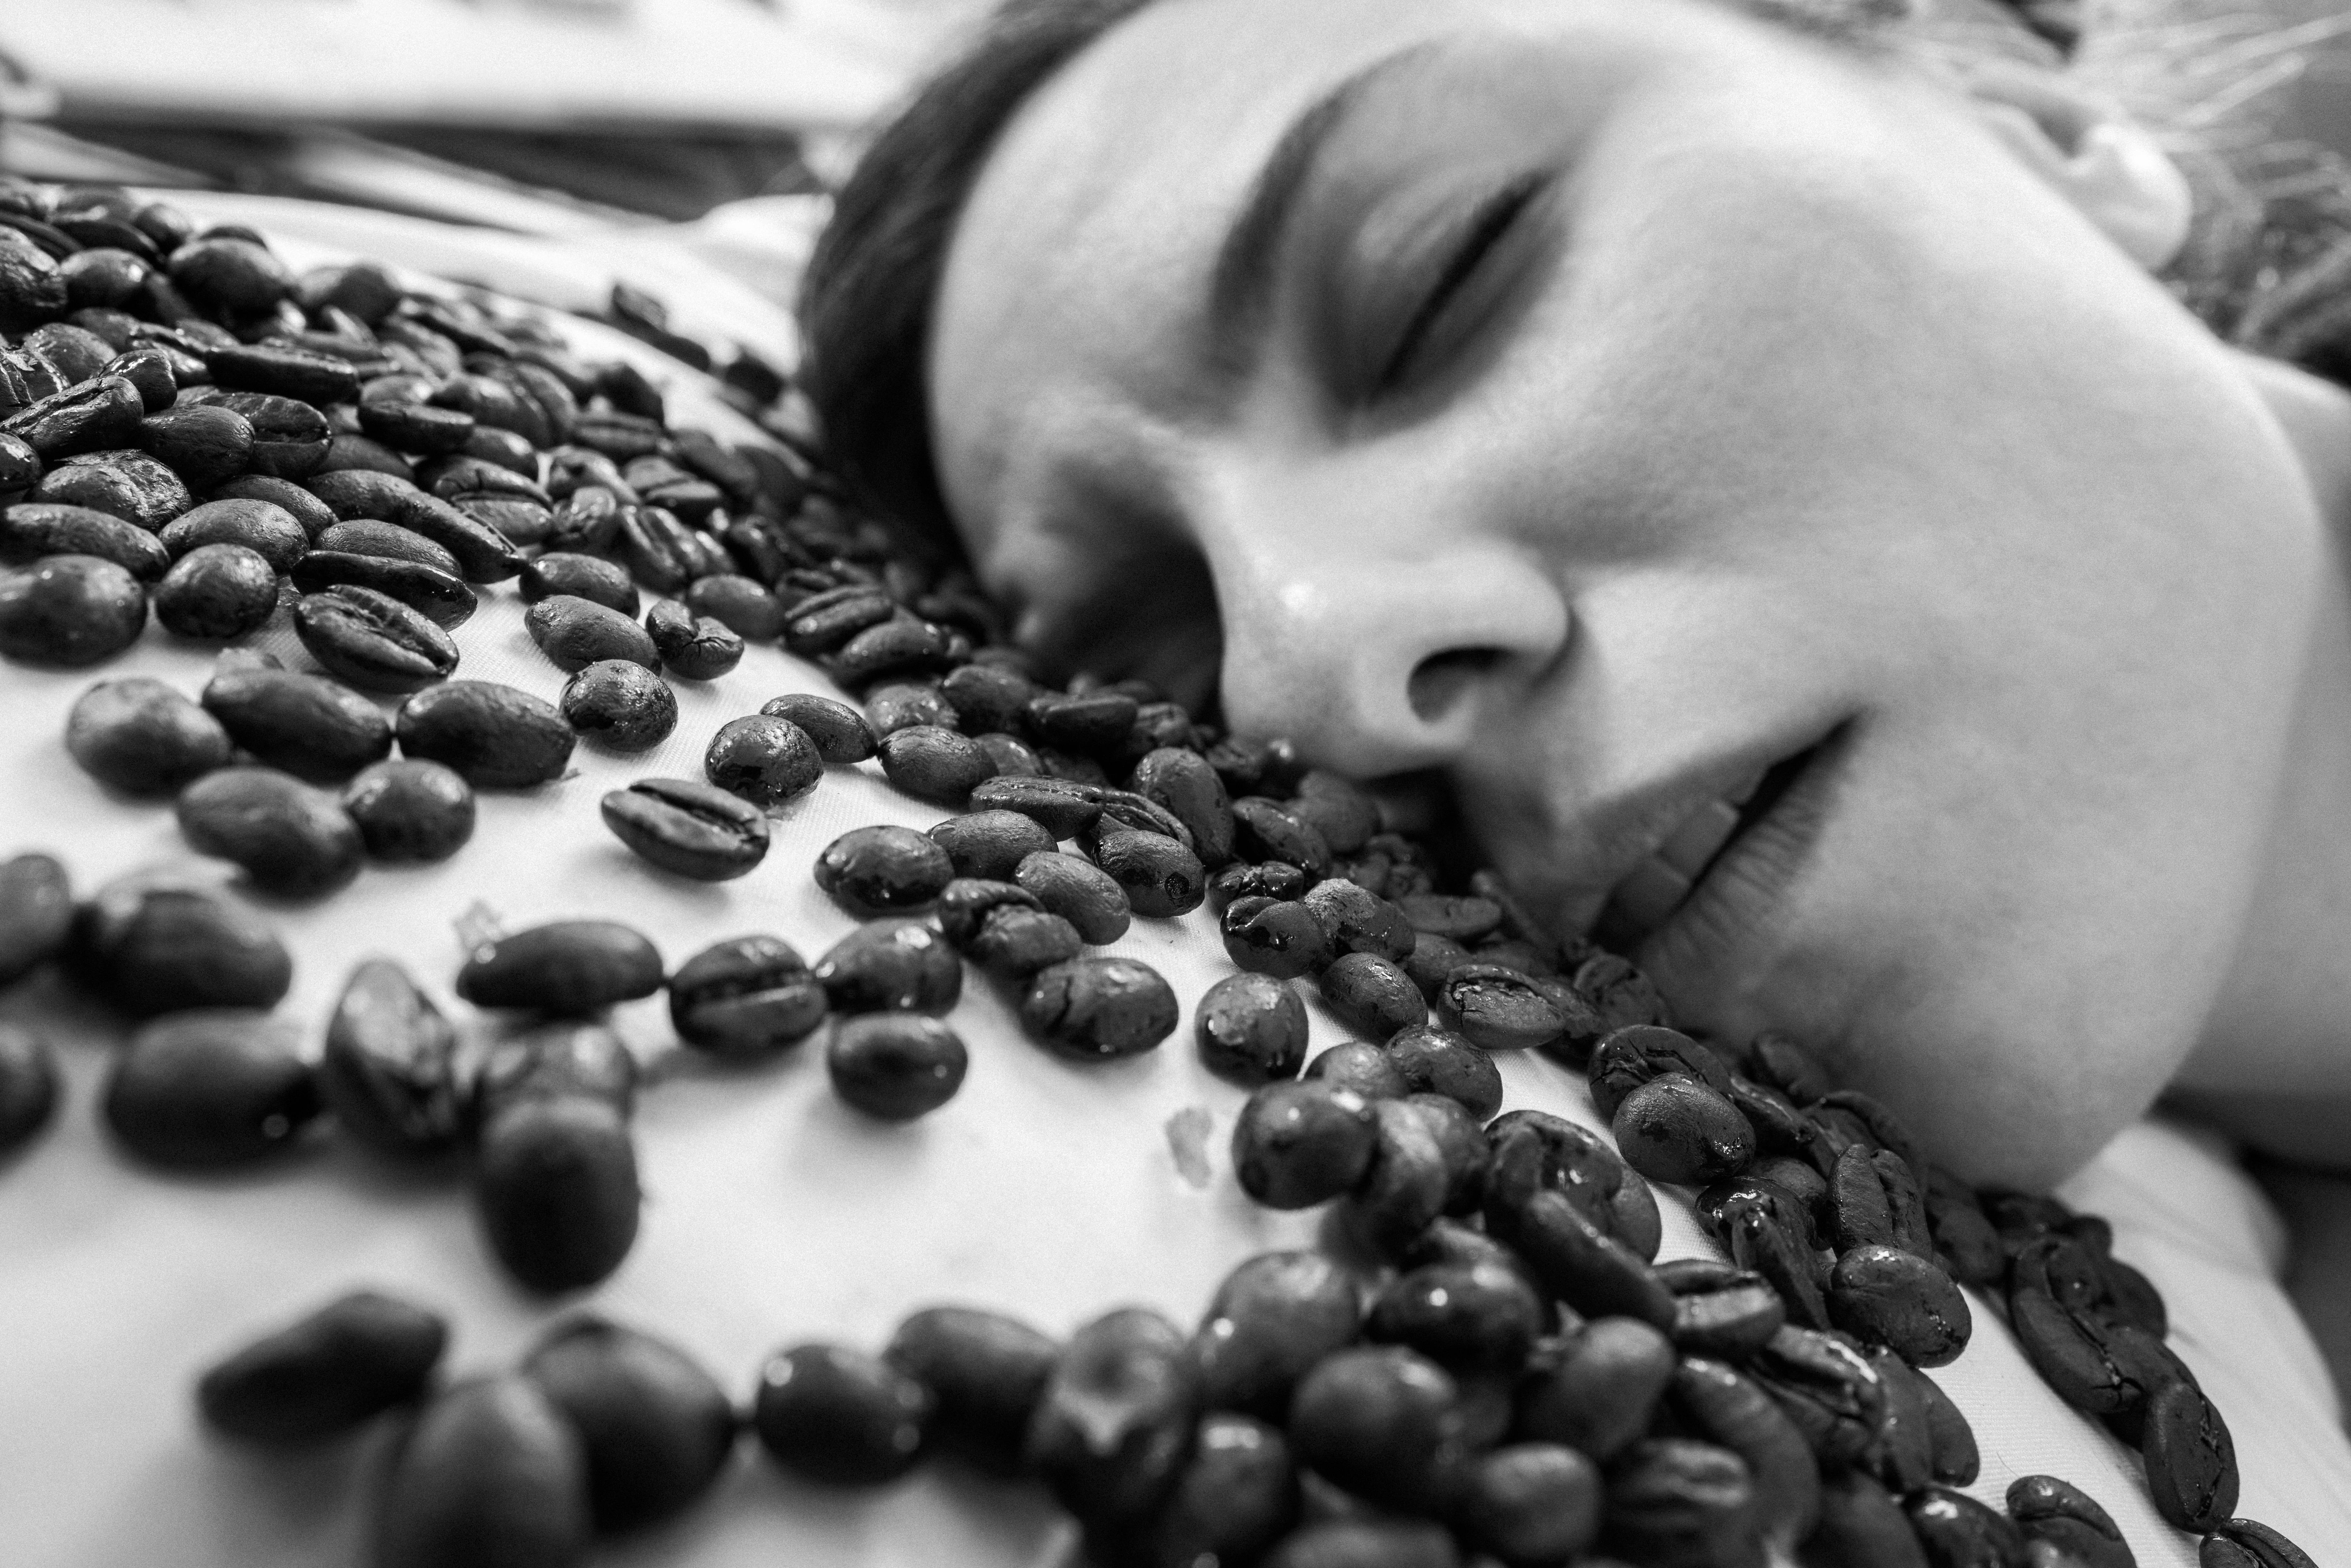 Woman asleep on a table of coffee beans